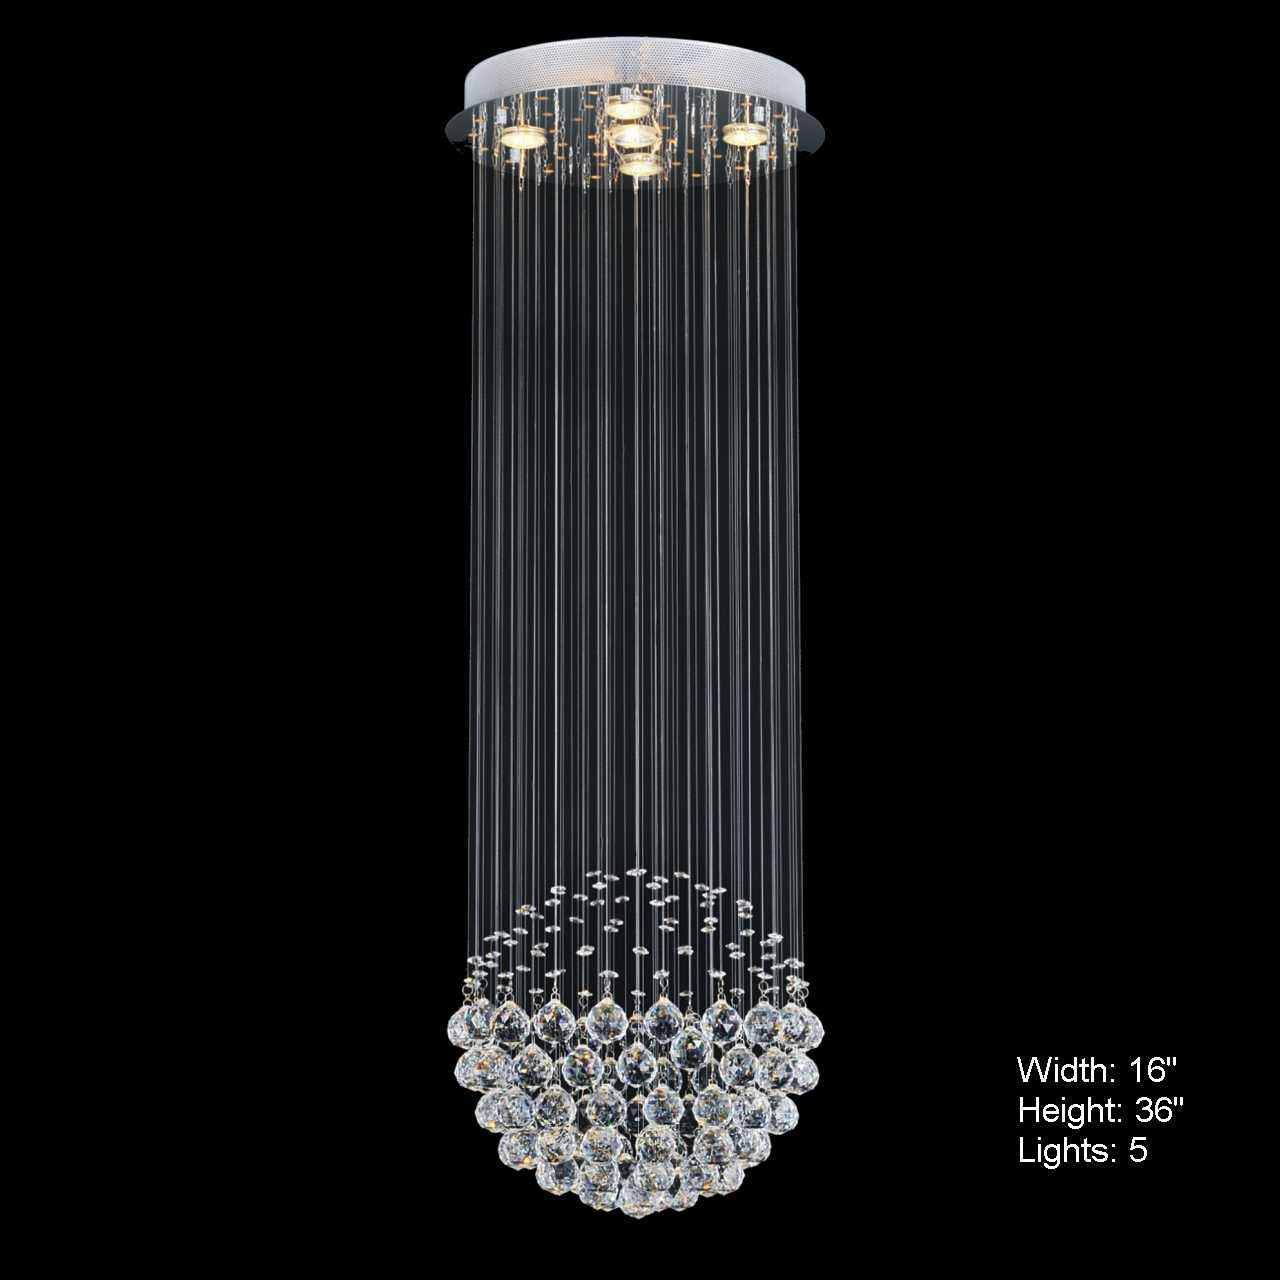 Brizzo lighting stores sphere modern crystal chandelier small picture of sphere modern crystal chandelier small mirror stainless steel base 1 light arubaitofo Choice Image